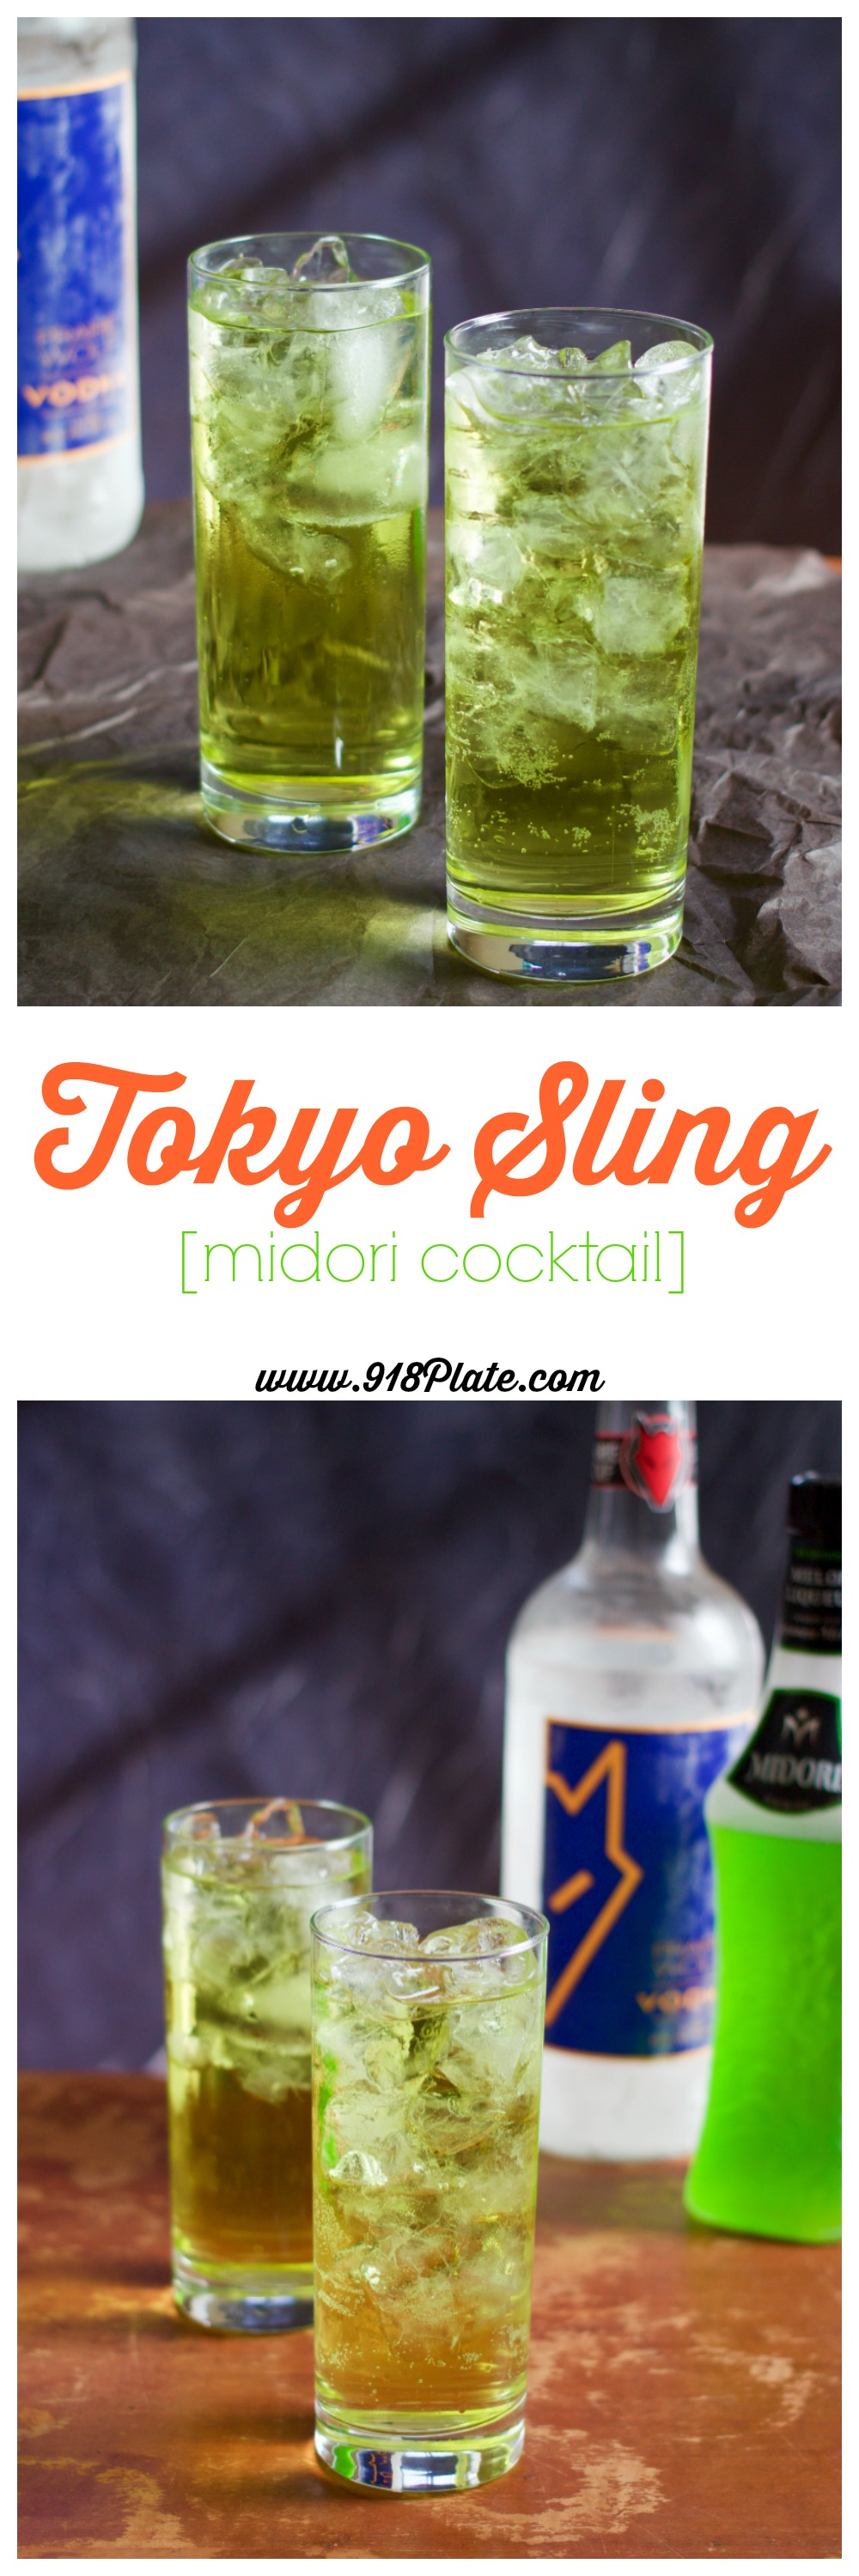 "This ""Tokyo Sling"" cocktail is bright and sunny, ready to usher in all that spring and summer have to offer!"